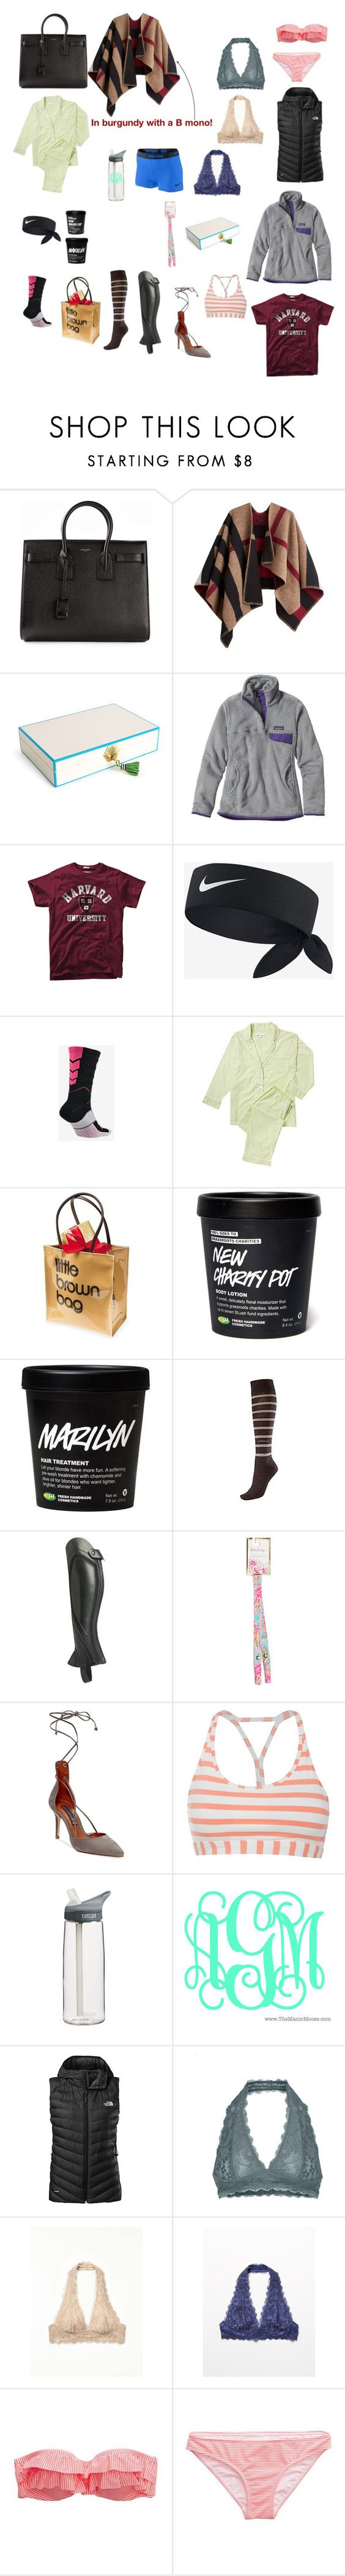 """""""Christmas Day haul!/**disclaimer in d**"""" by liprep ❤ liked on Polyvore featuring Yves Saint Laurent, Burberry, Jonathan Adler, Patagonia, NIKE, Marigot, Bloomingdale's, Lilly Pulitzer, Steven by Steve Madden and Reebok"""